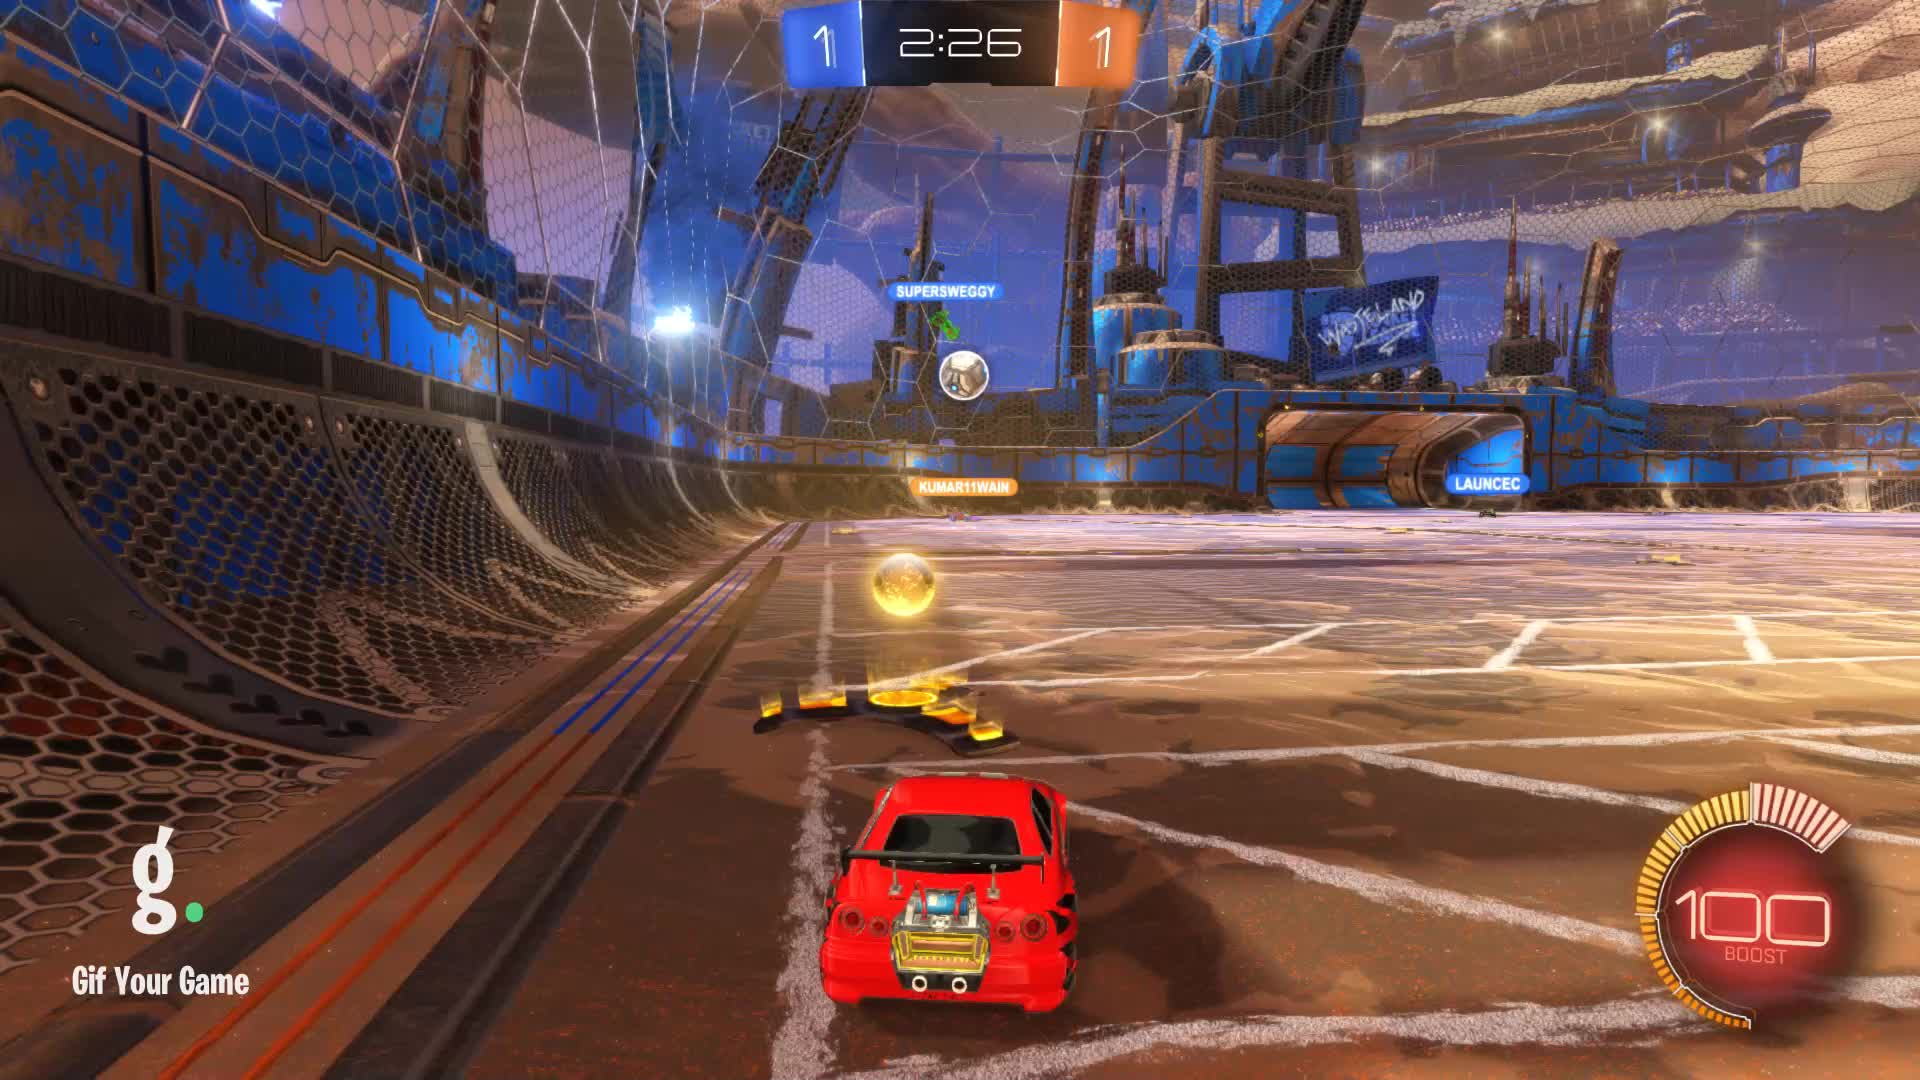 Assist, Gif Your Game, GifYourGame, Rocket League, RocketLeague, datboi, Assist 1: datboi GIFs